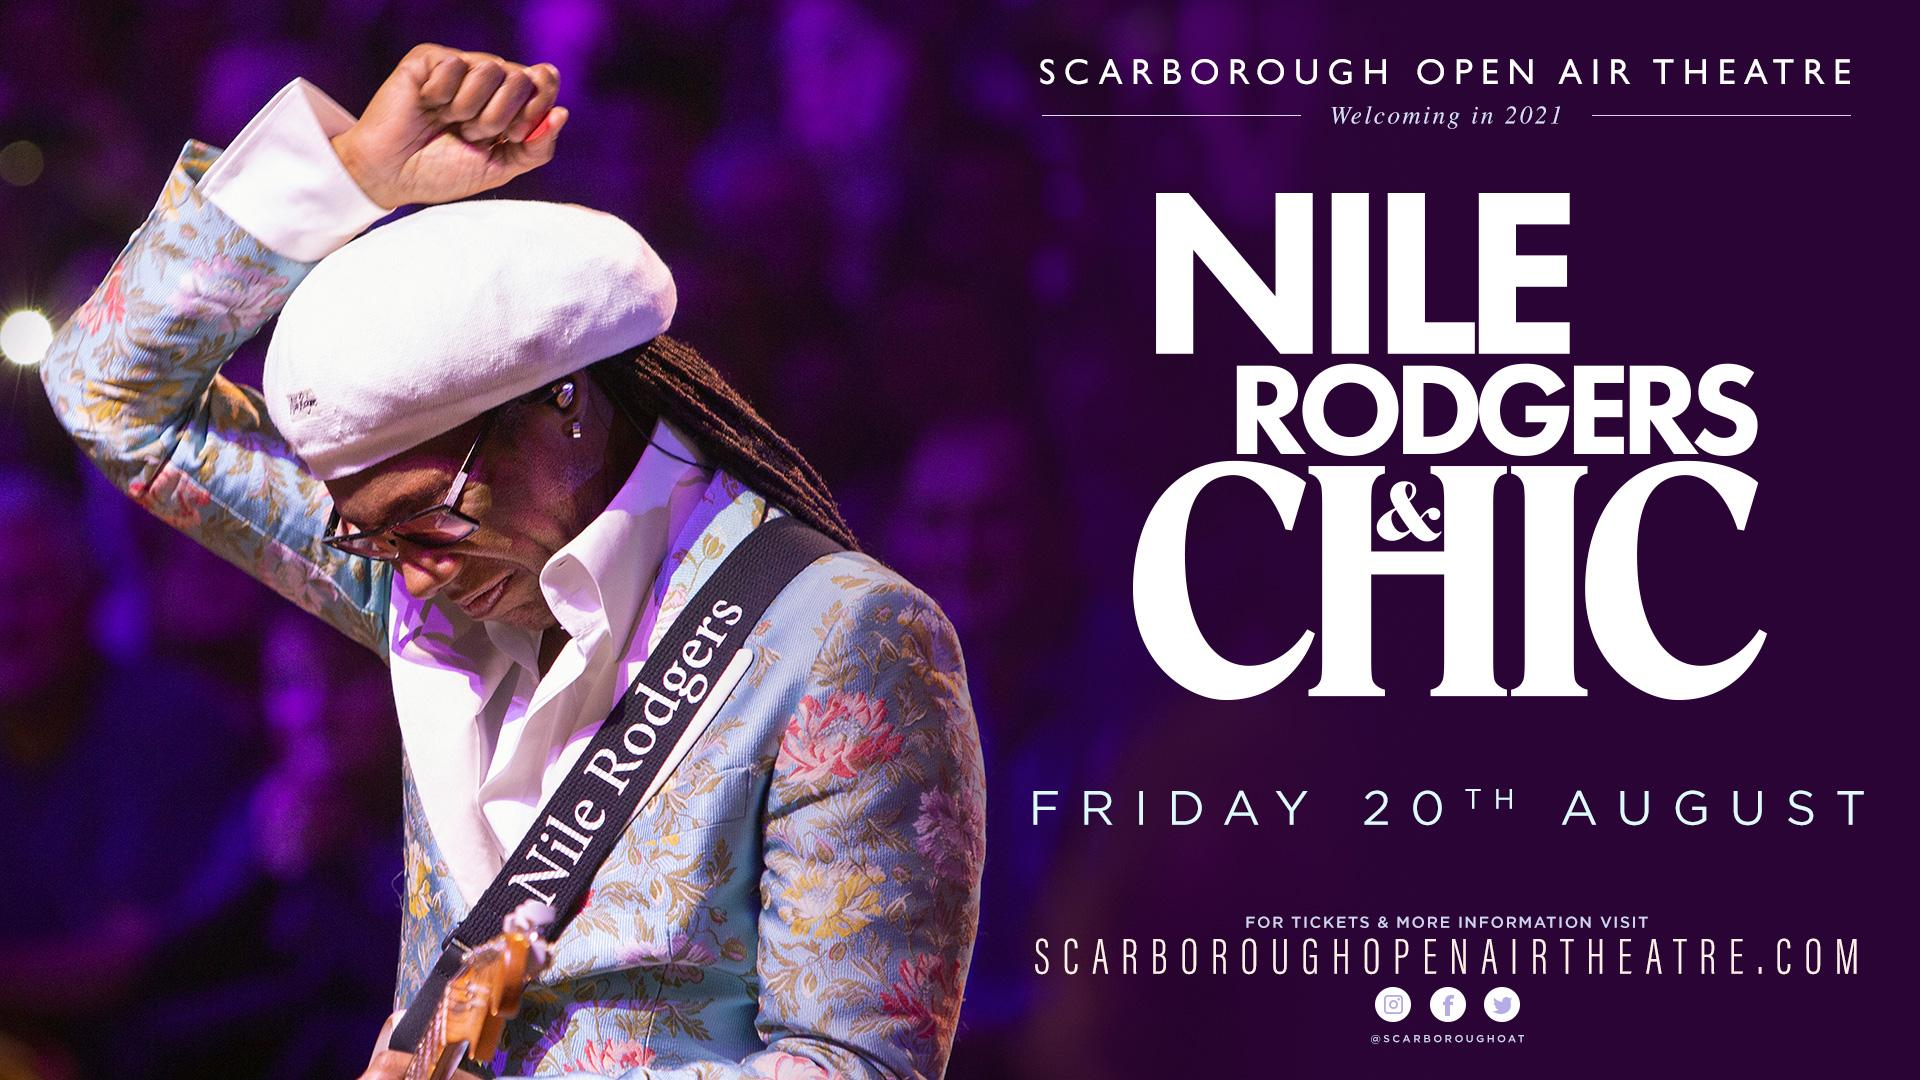 Promotional graphic for Nile Rodgers & CHIC